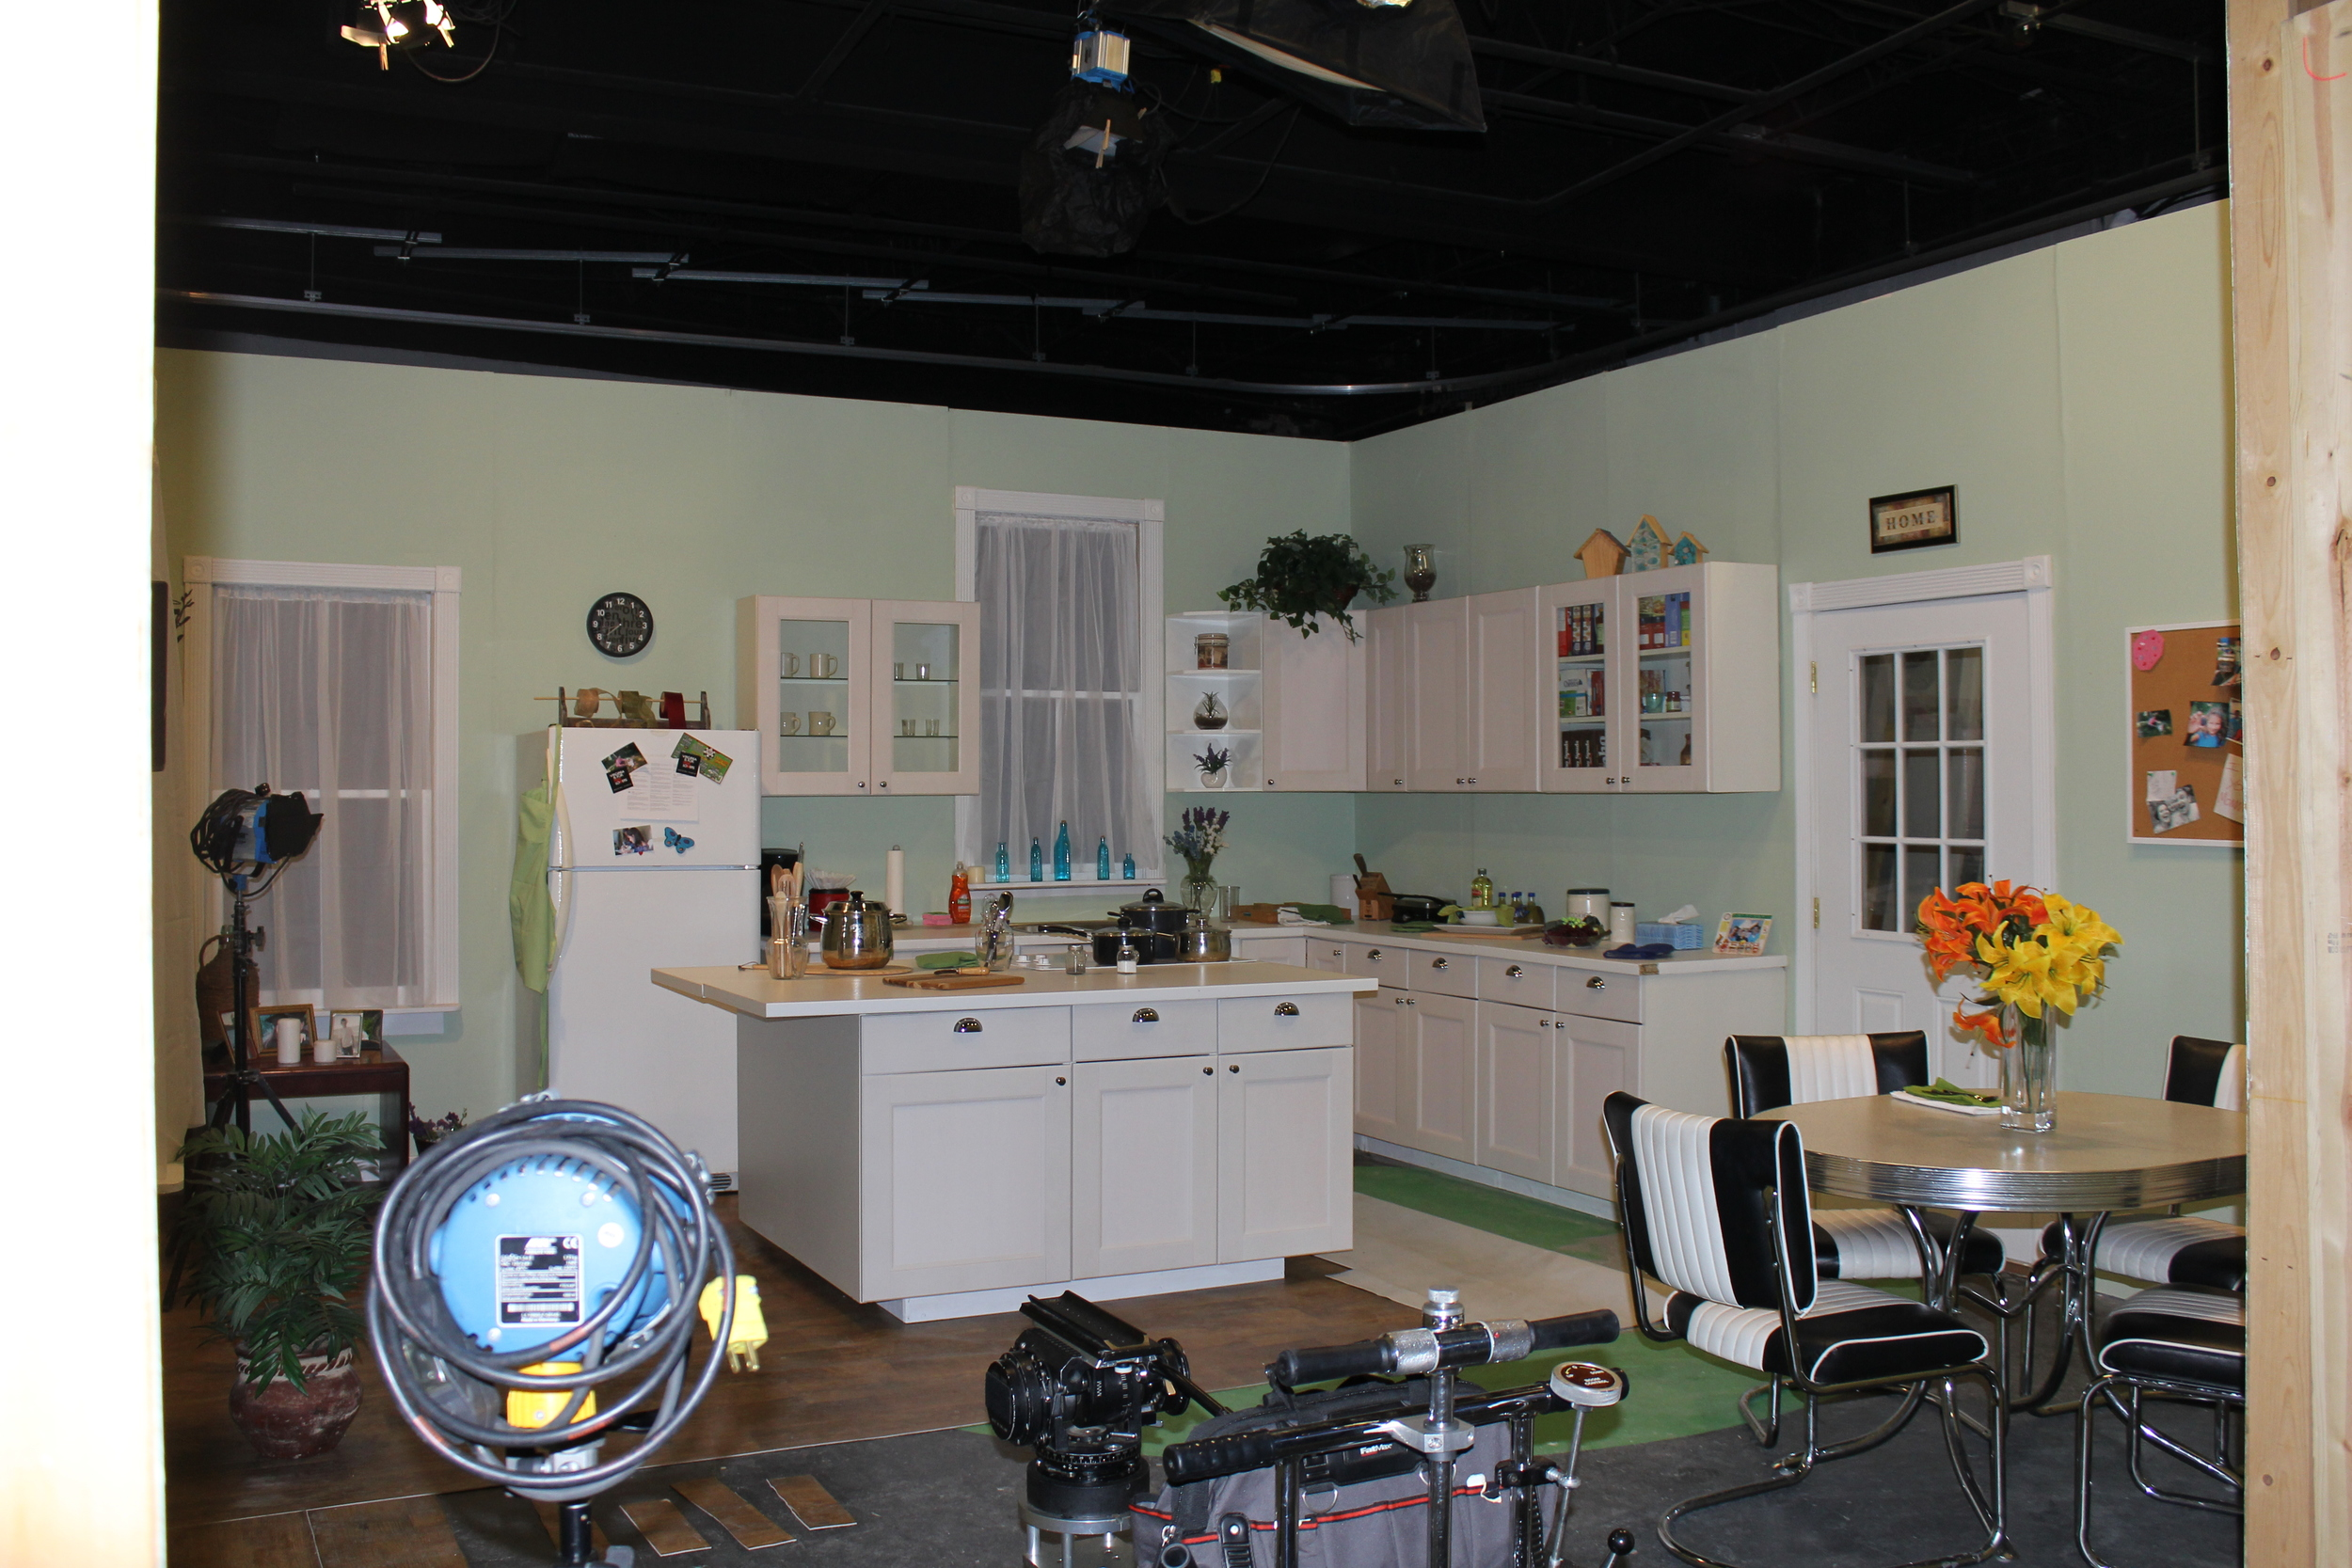 Copy of Shooting Studio - set